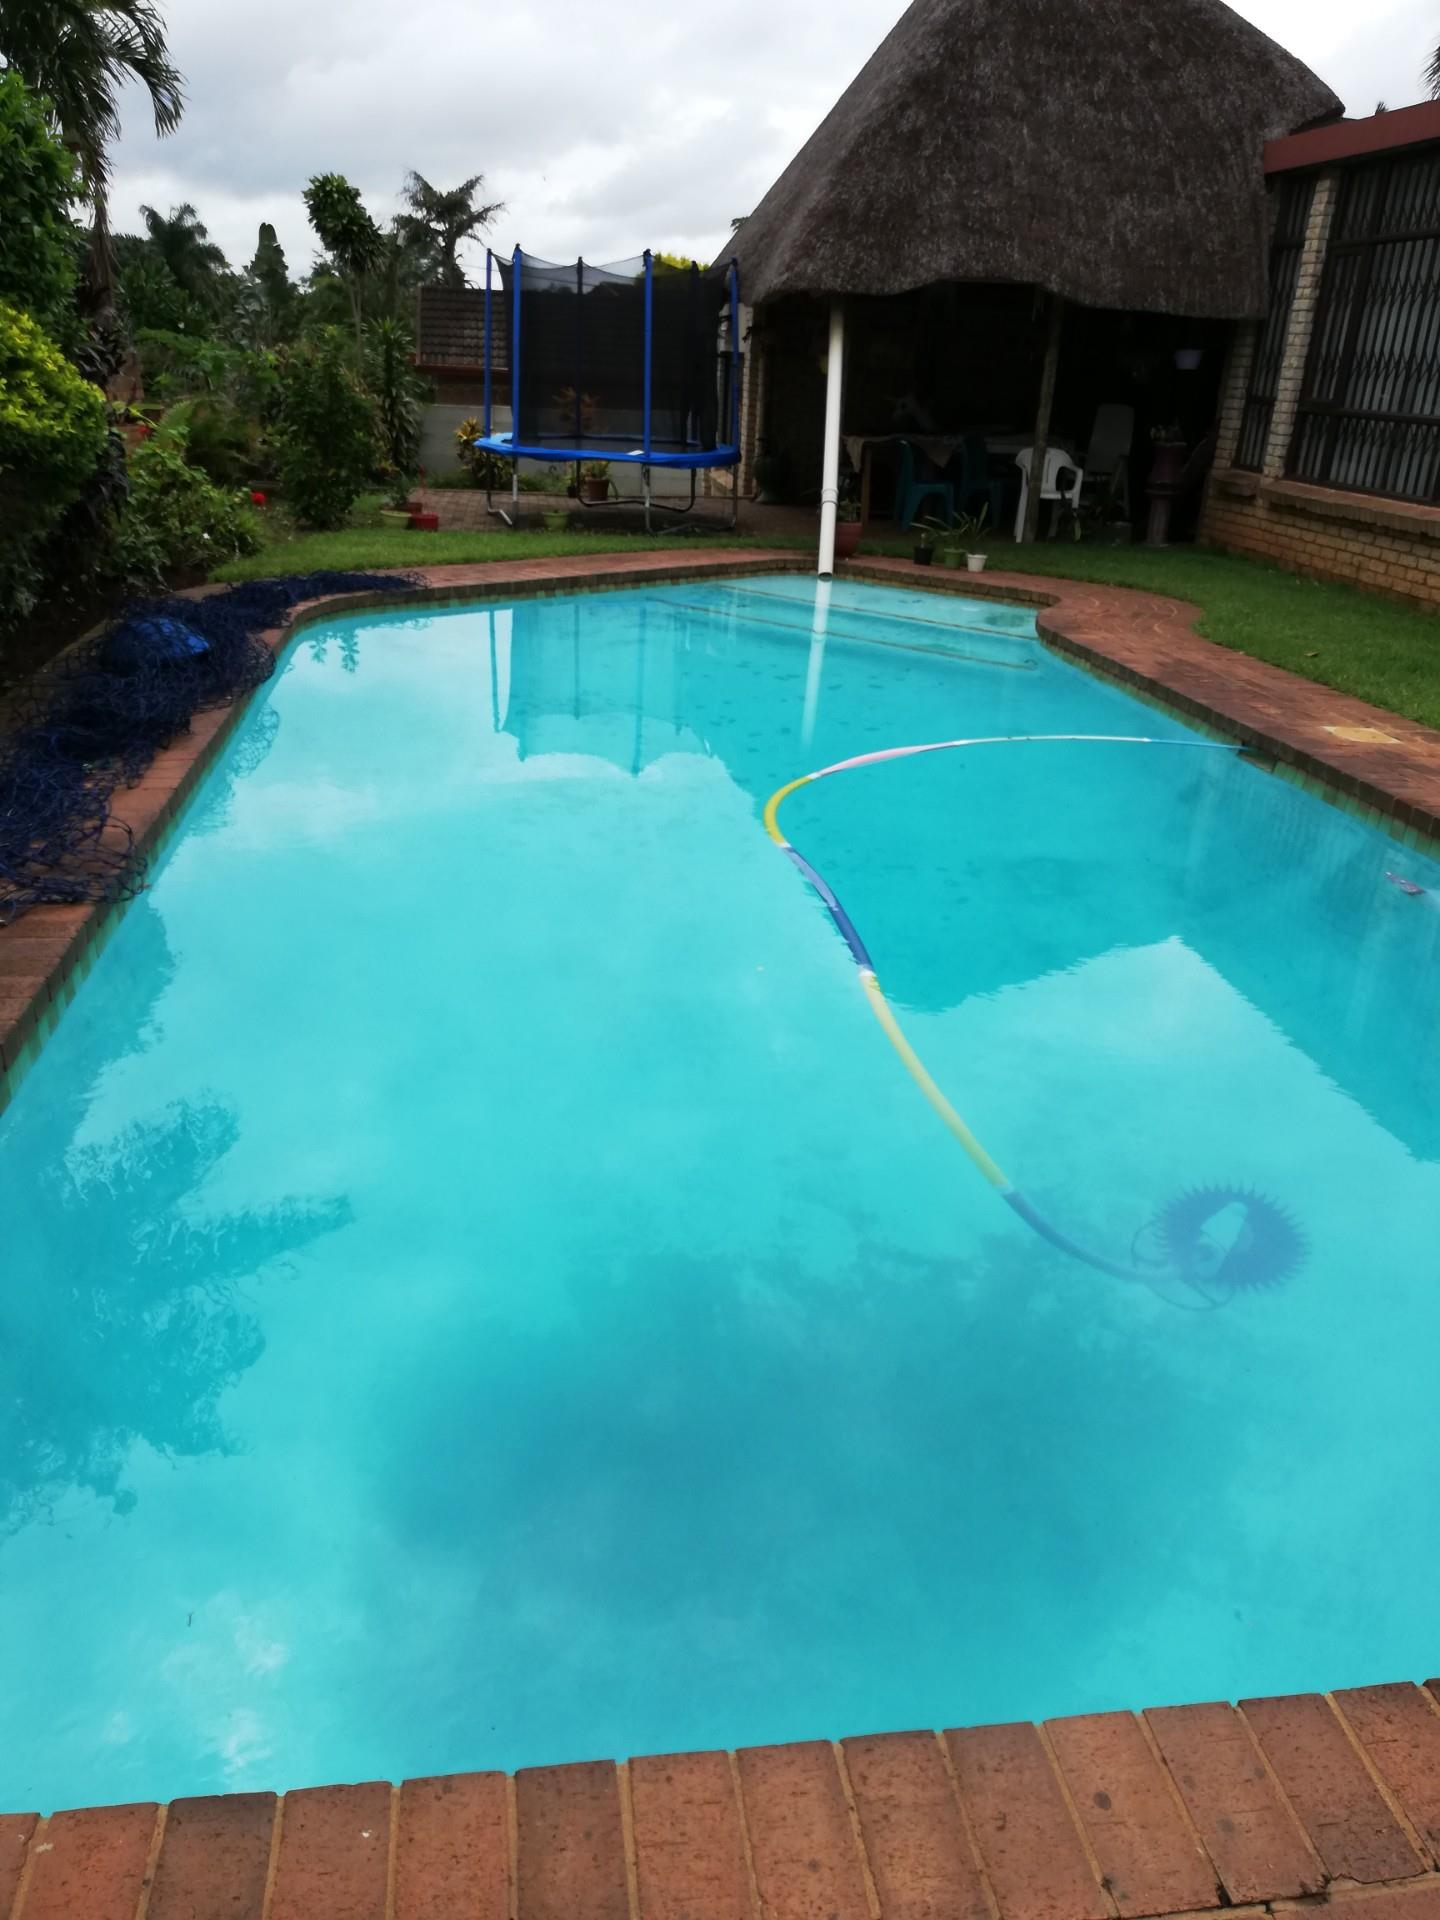 Property for sale in Empangeni | RE/MAX™ of Southern Africa